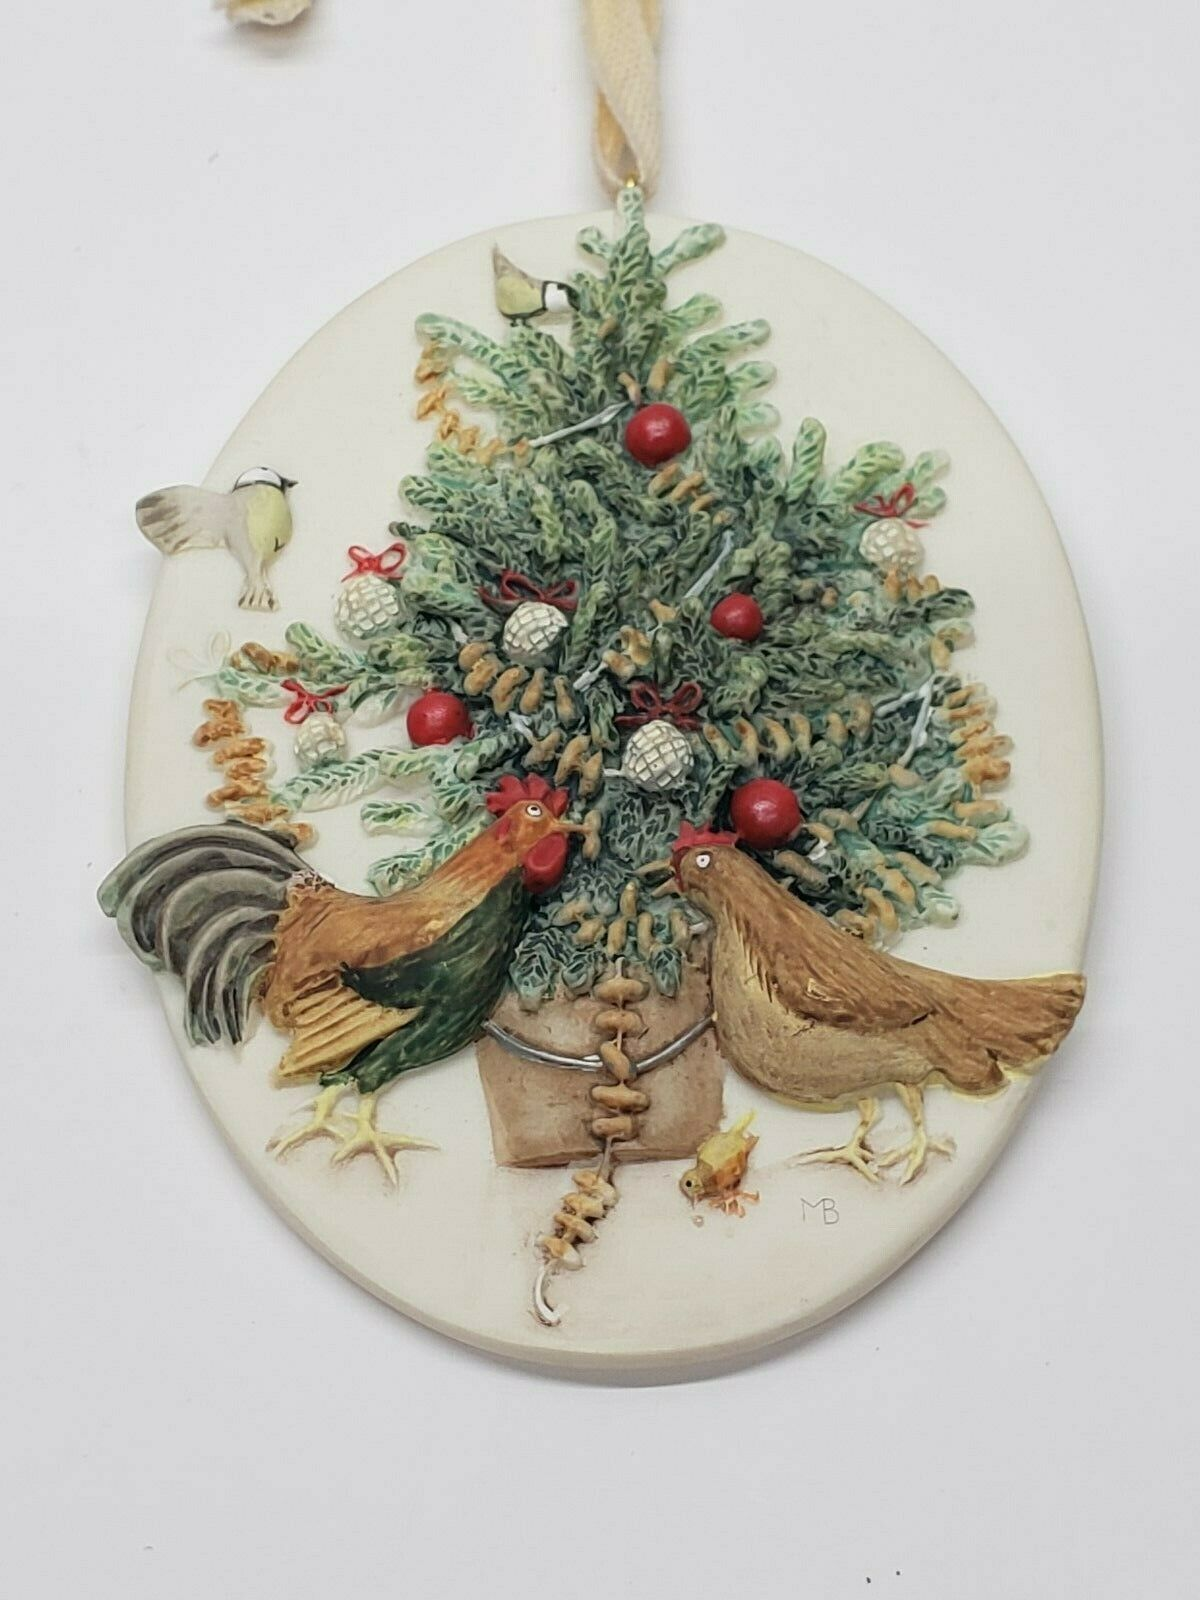 1996 Natures Sketchbook BIRDS CHRISTMAS TREE - Marjolein Bastin